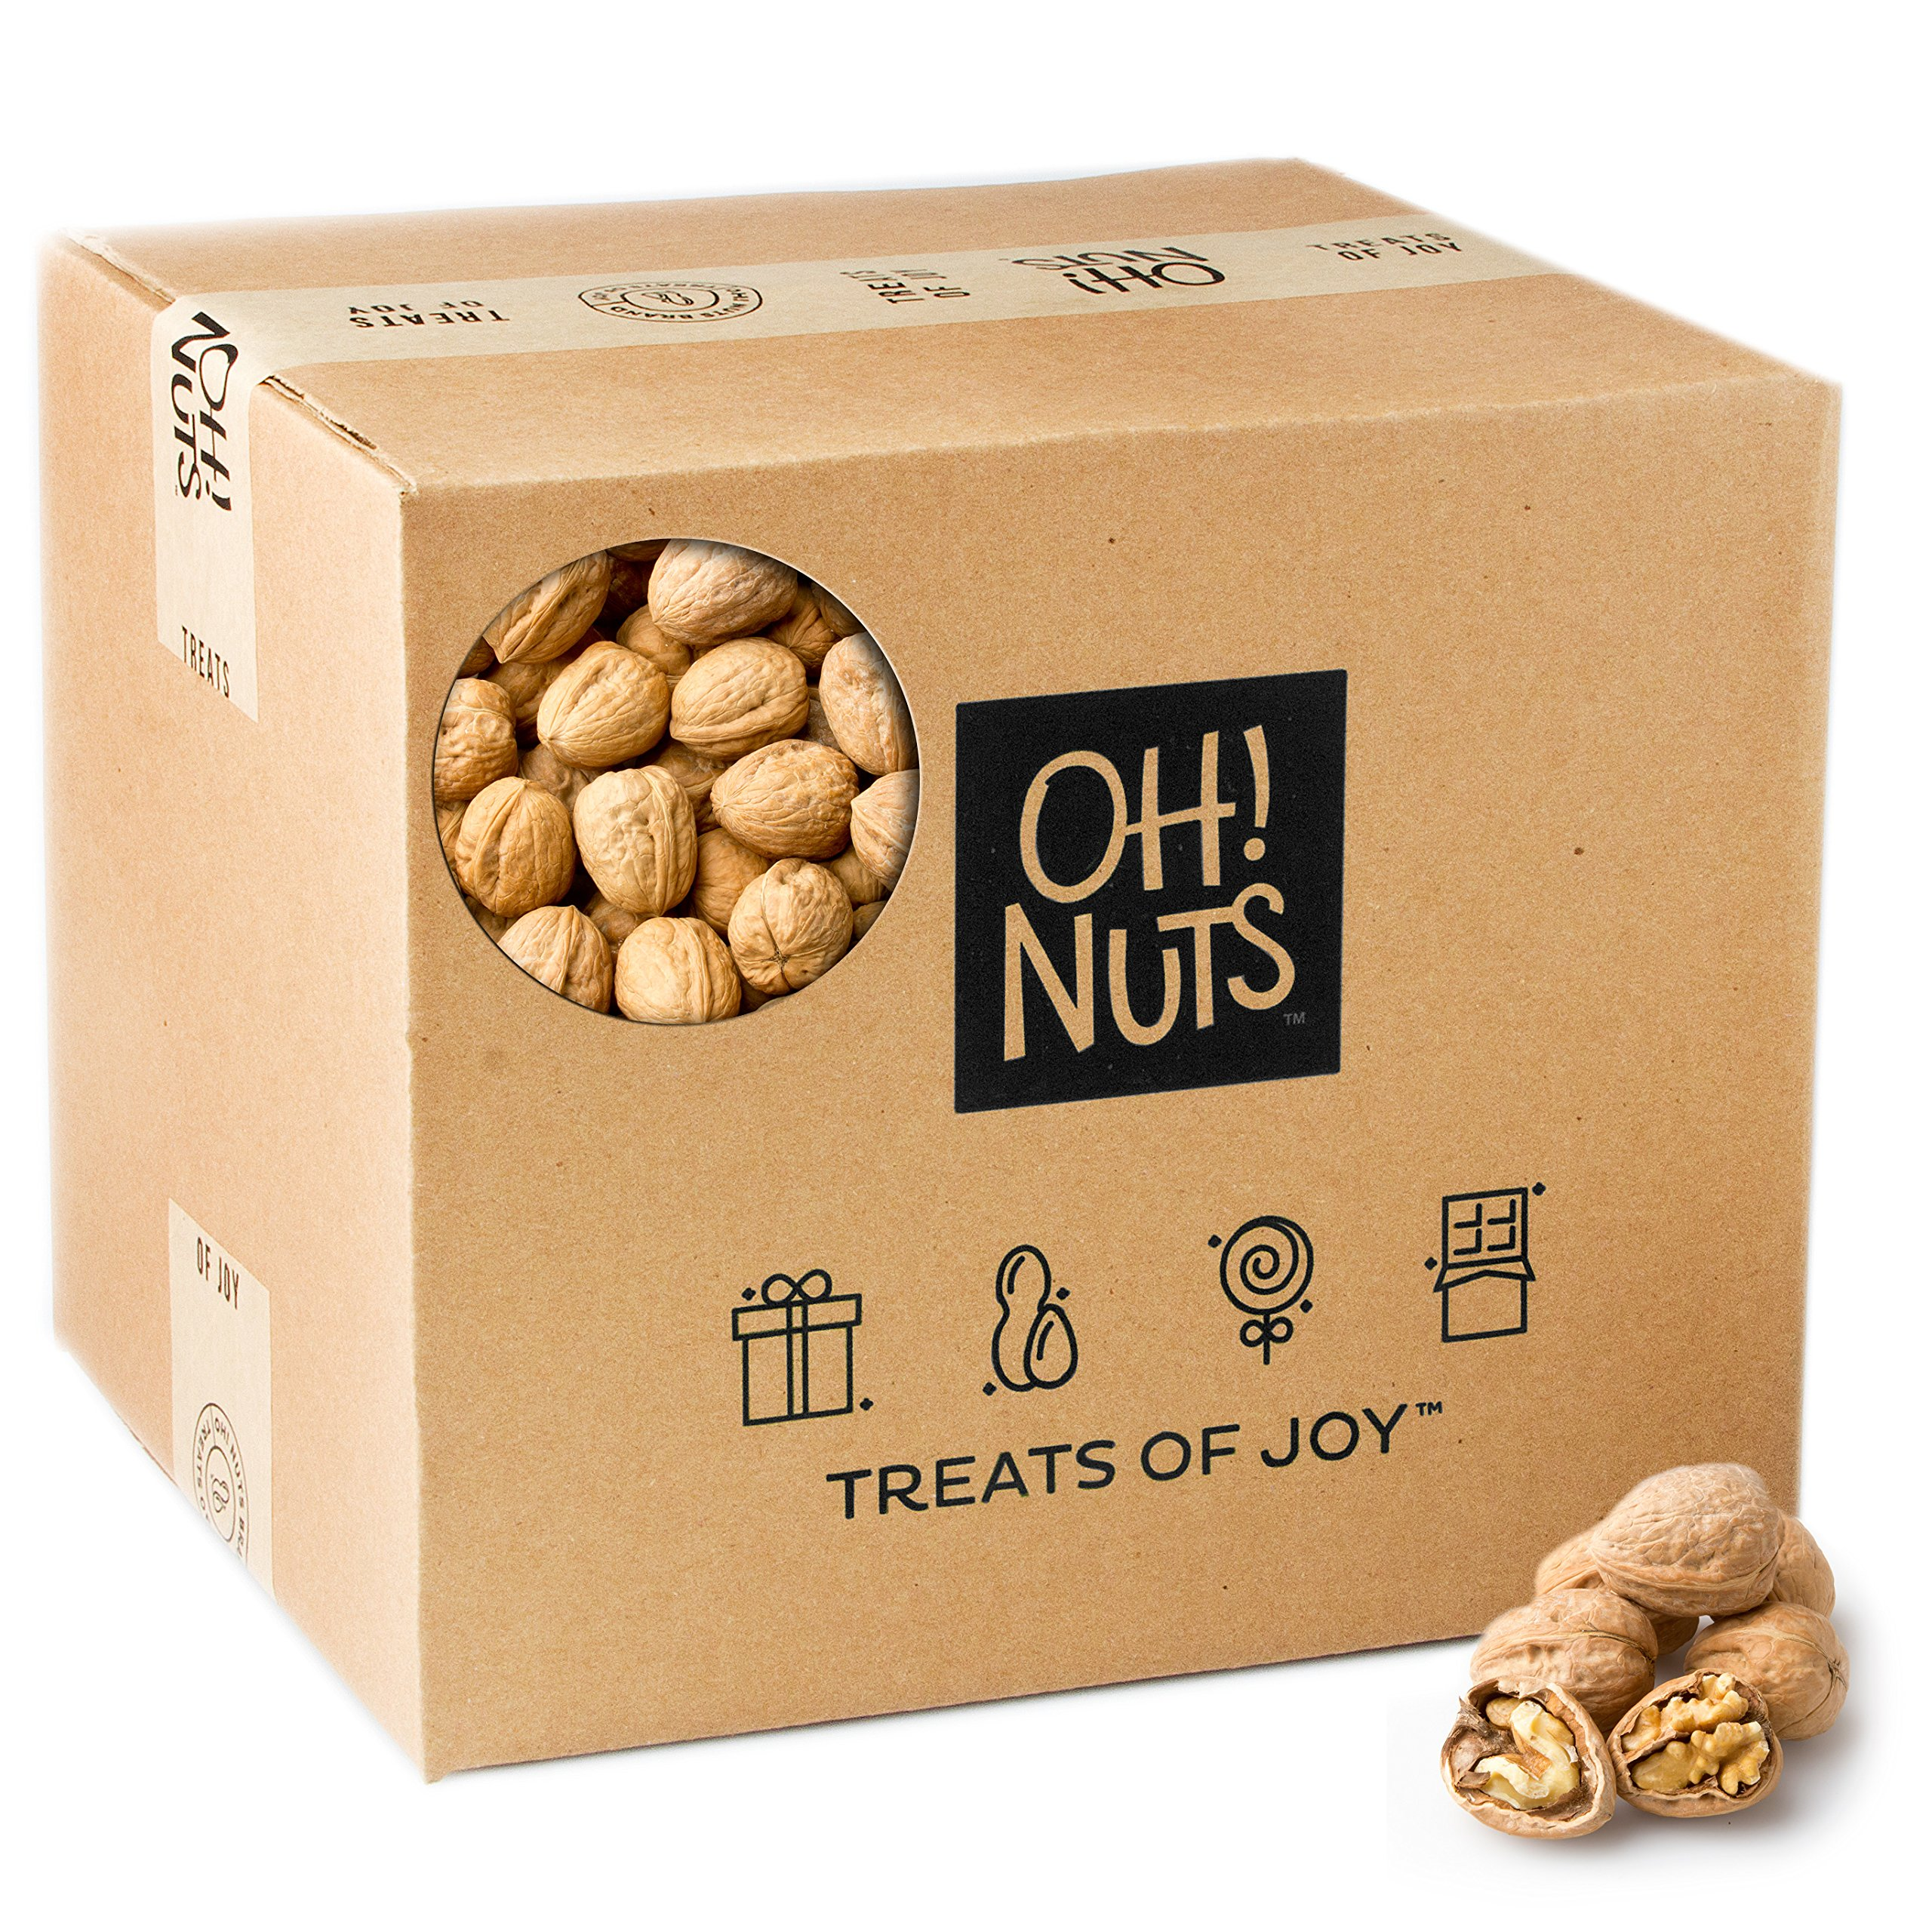 In Shell Walnuts- Oh! Nuts (25 Pound Bag) by Oh! Nuts®